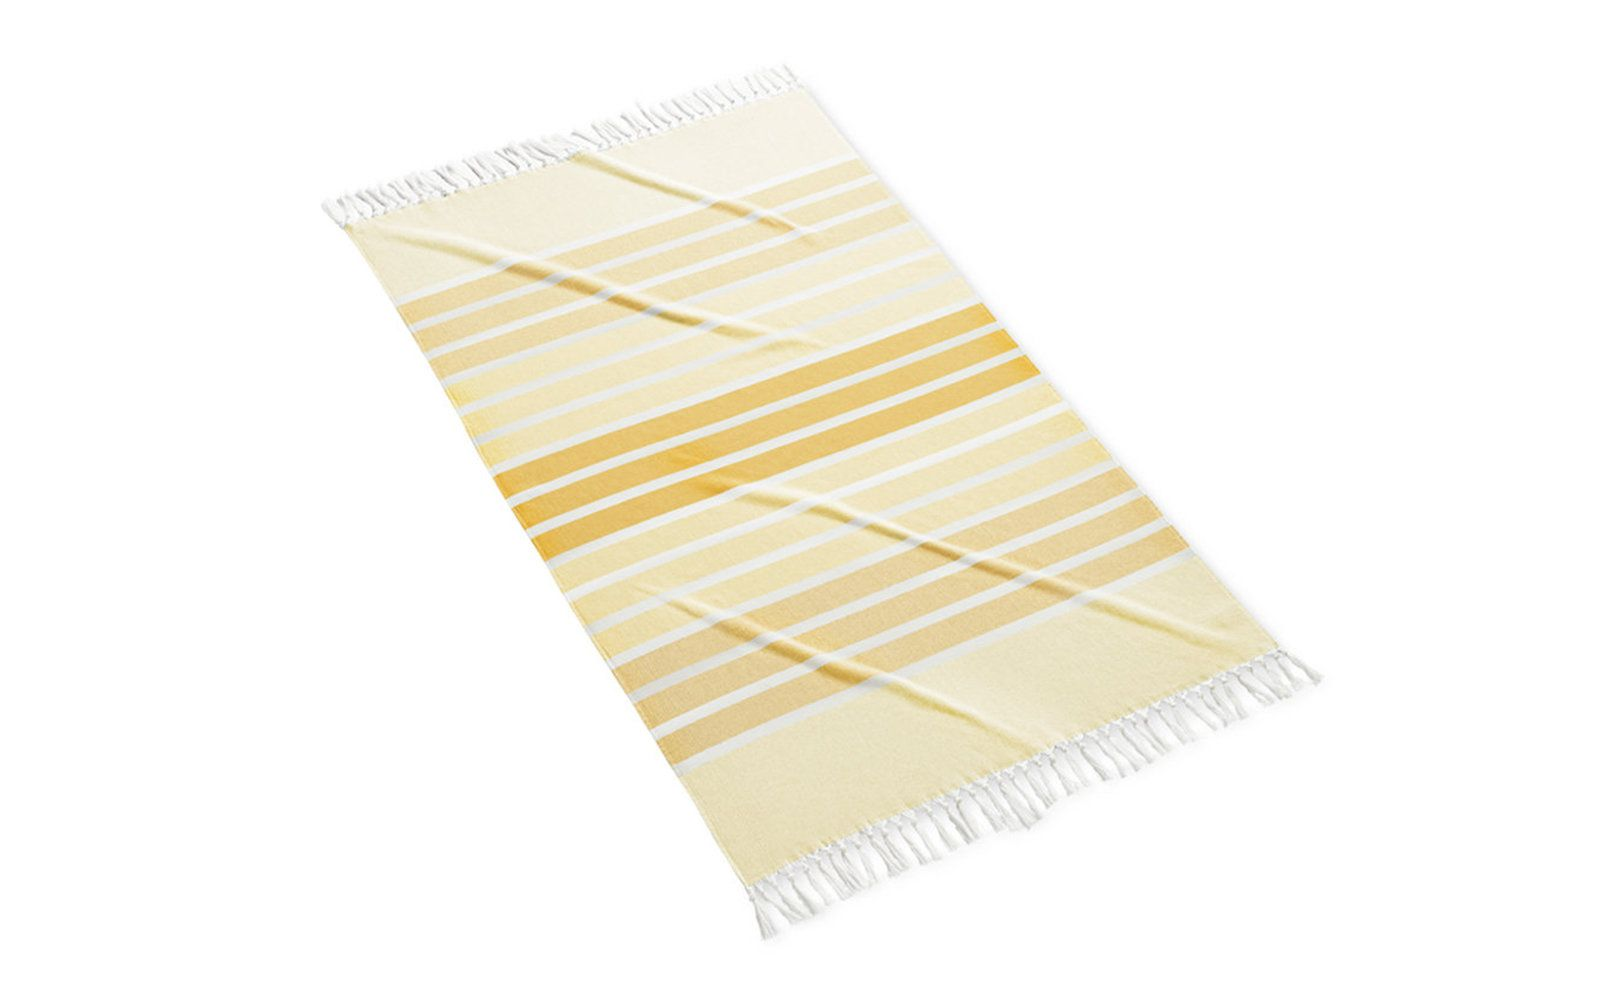 featuring our Bodrum beach towel in yellow.